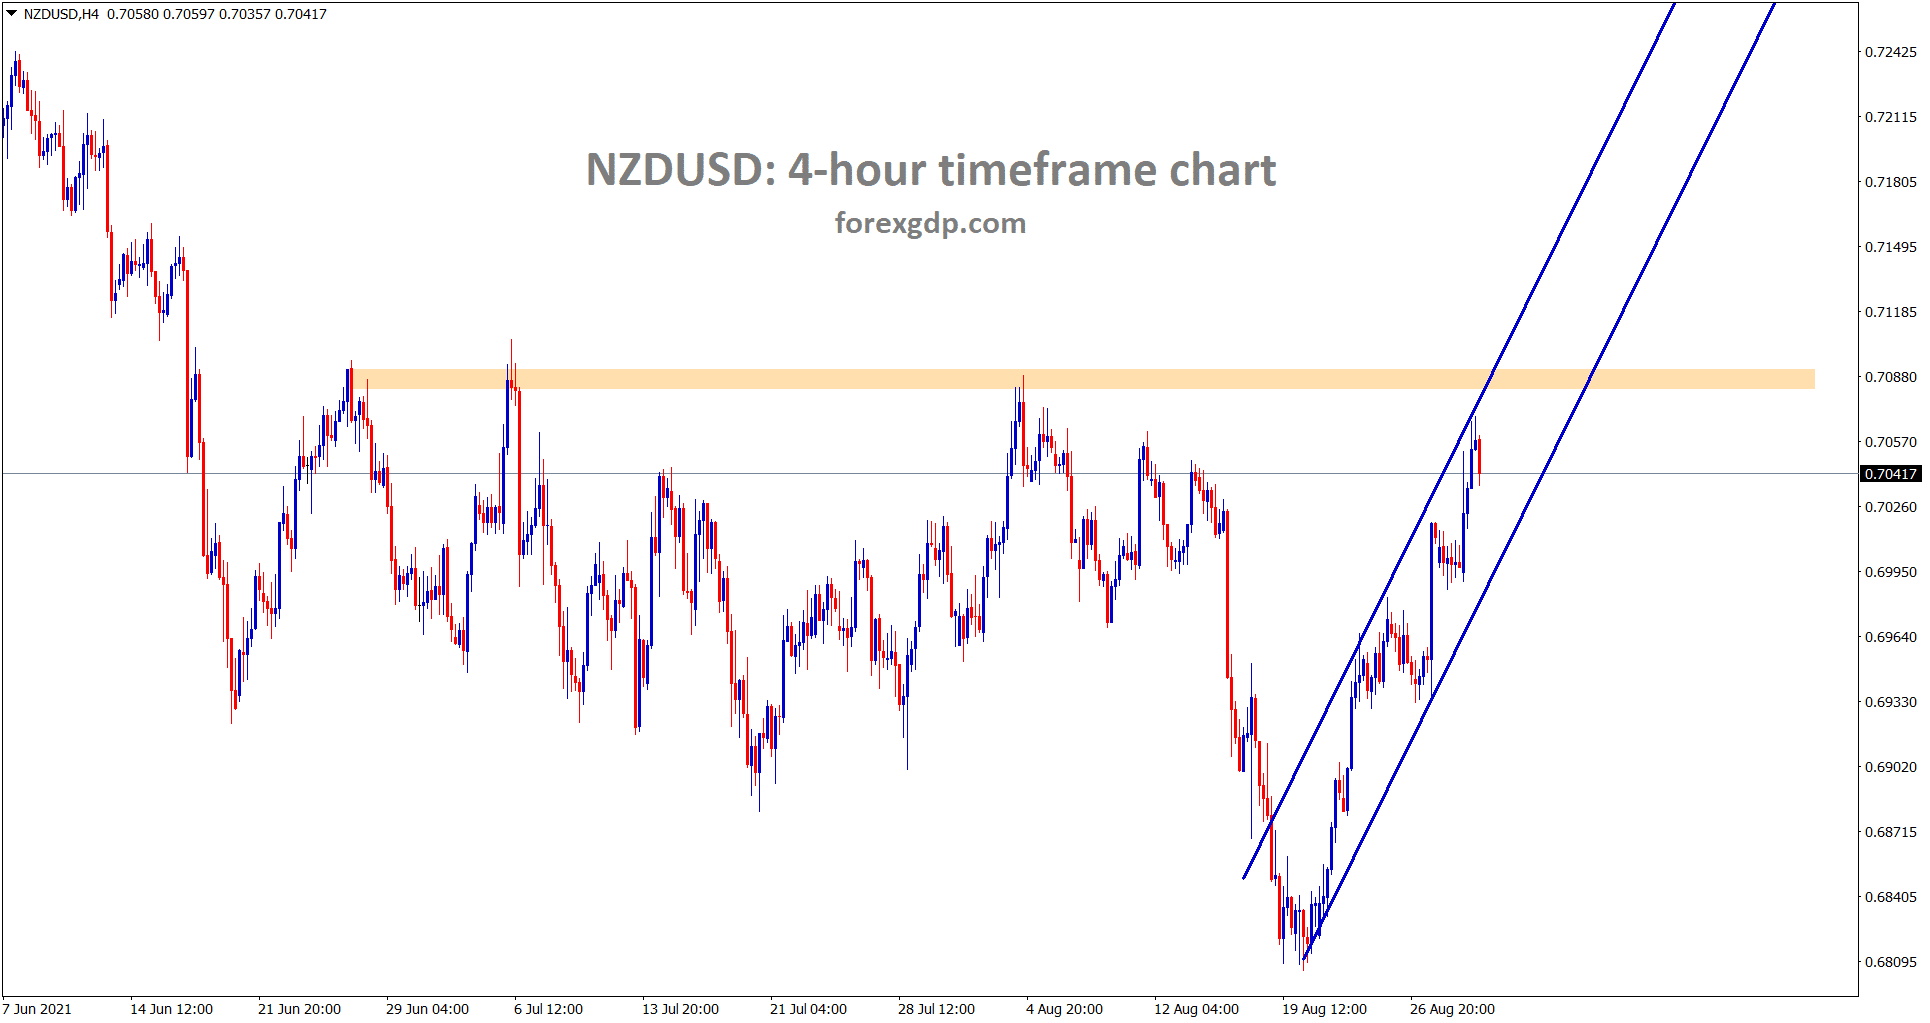 NZDUSD is moving in a minor uptrend line and its near to the major resistance area